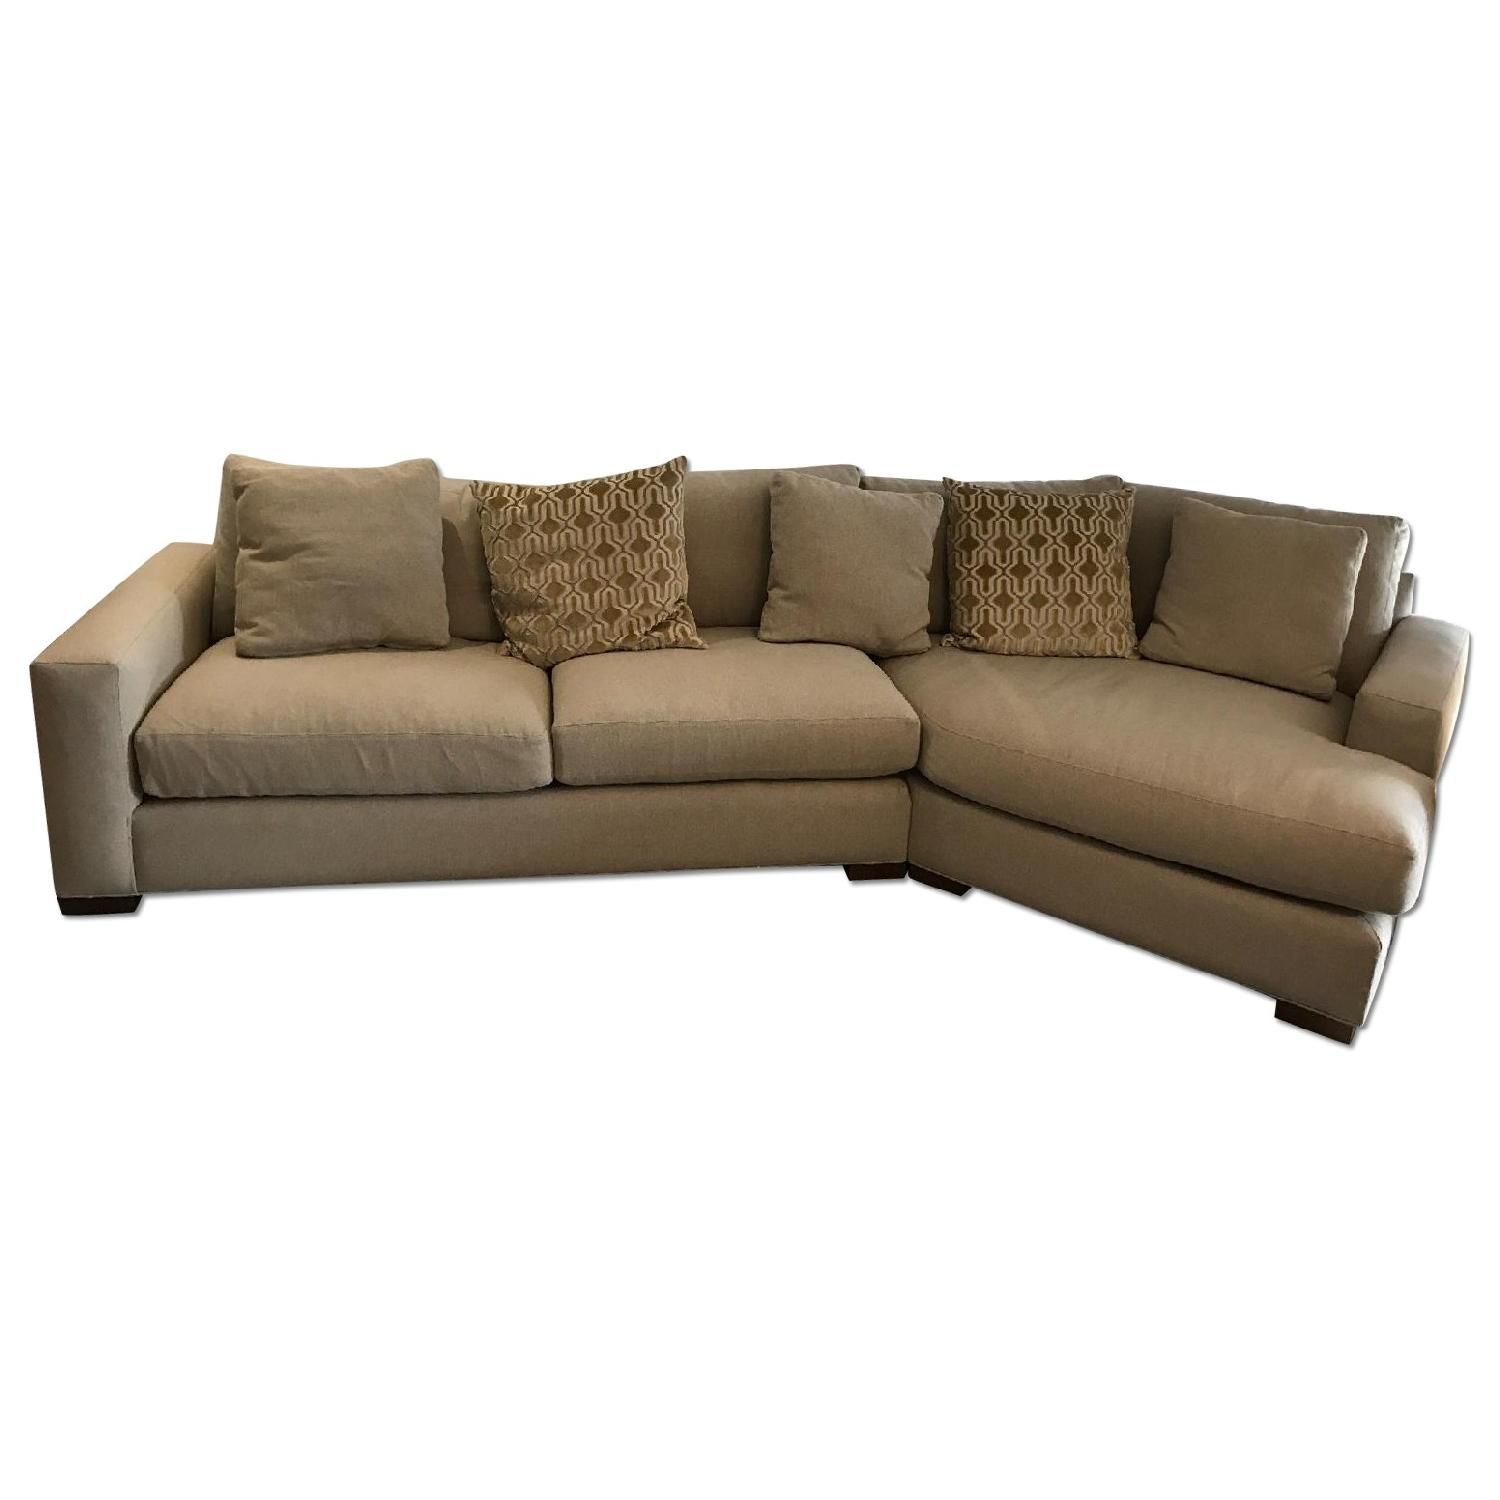 Room & Board Metro Sectional Sofa - image-0